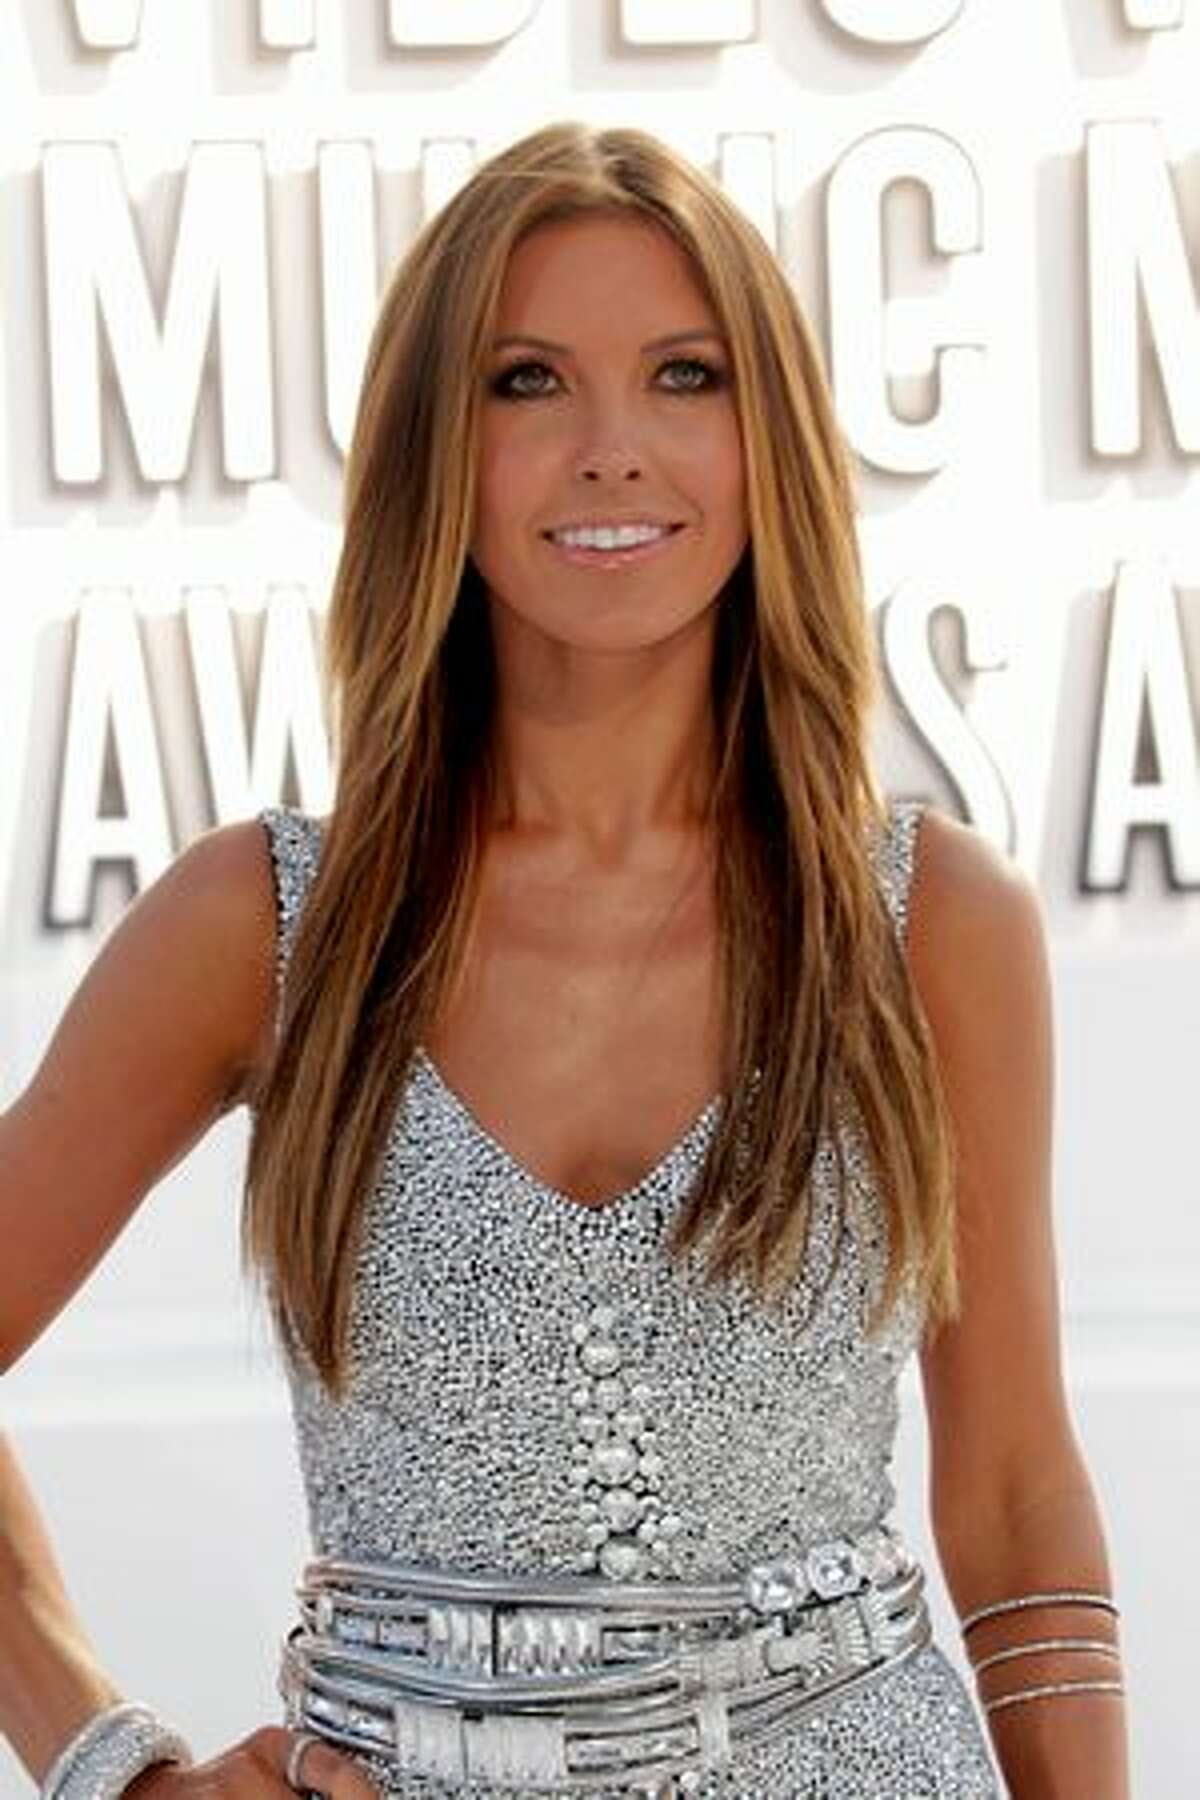 Actress Audrina Patridge arrives at the 2010 MTV Video Music Awards at NOKIA Theatre L.A. LIVE in Los Angeles on Sunday, Sept. 12, 2010.